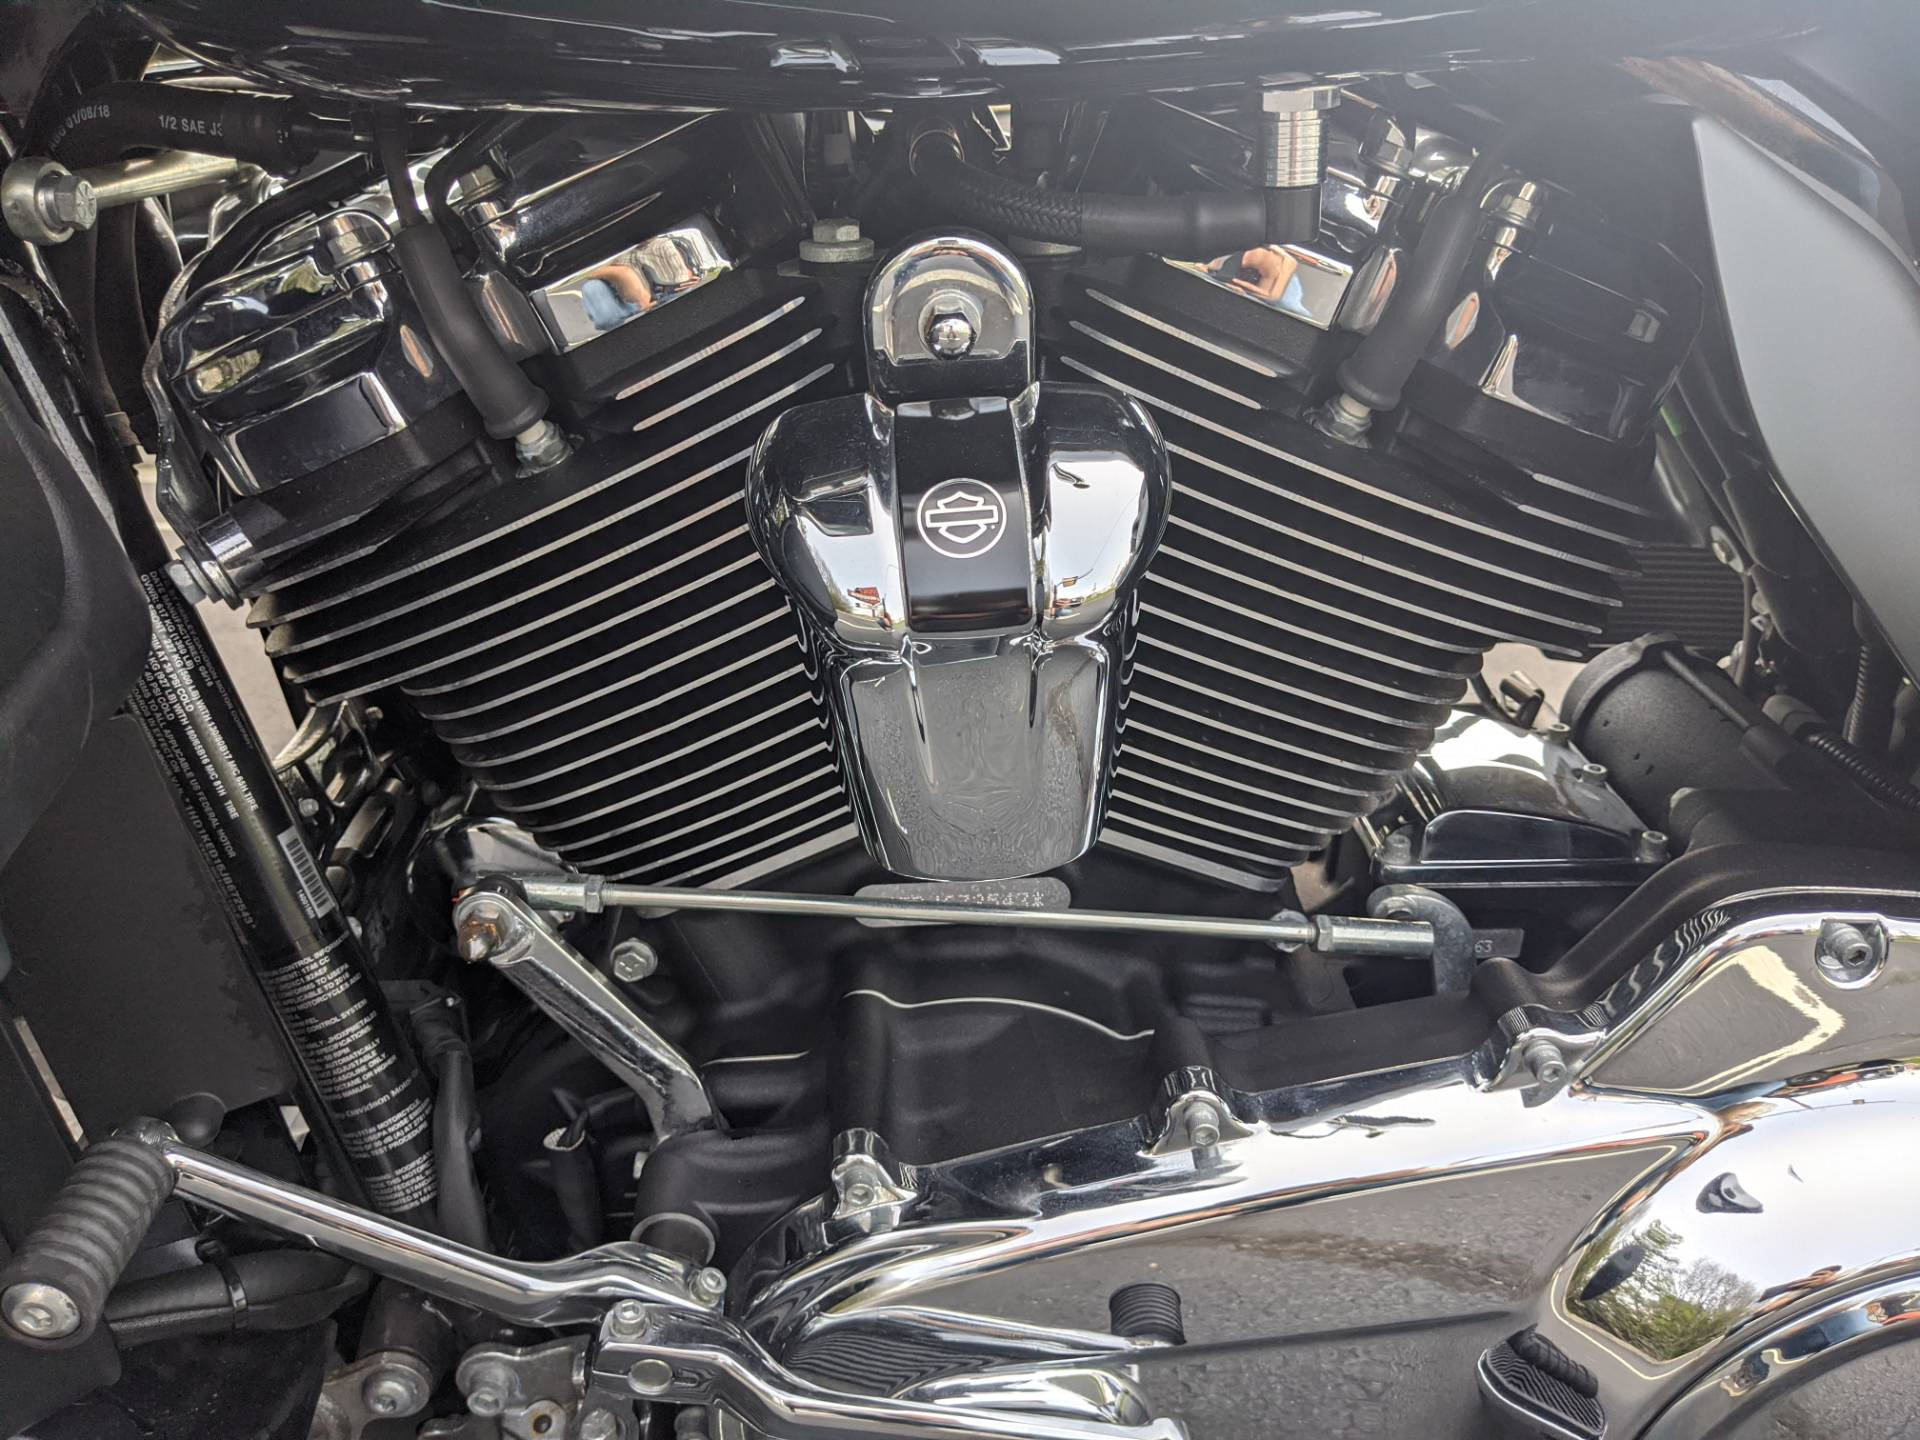 2018 Harley-Davidson Ultra Limited in Lynchburg, Virginia - Photo 13